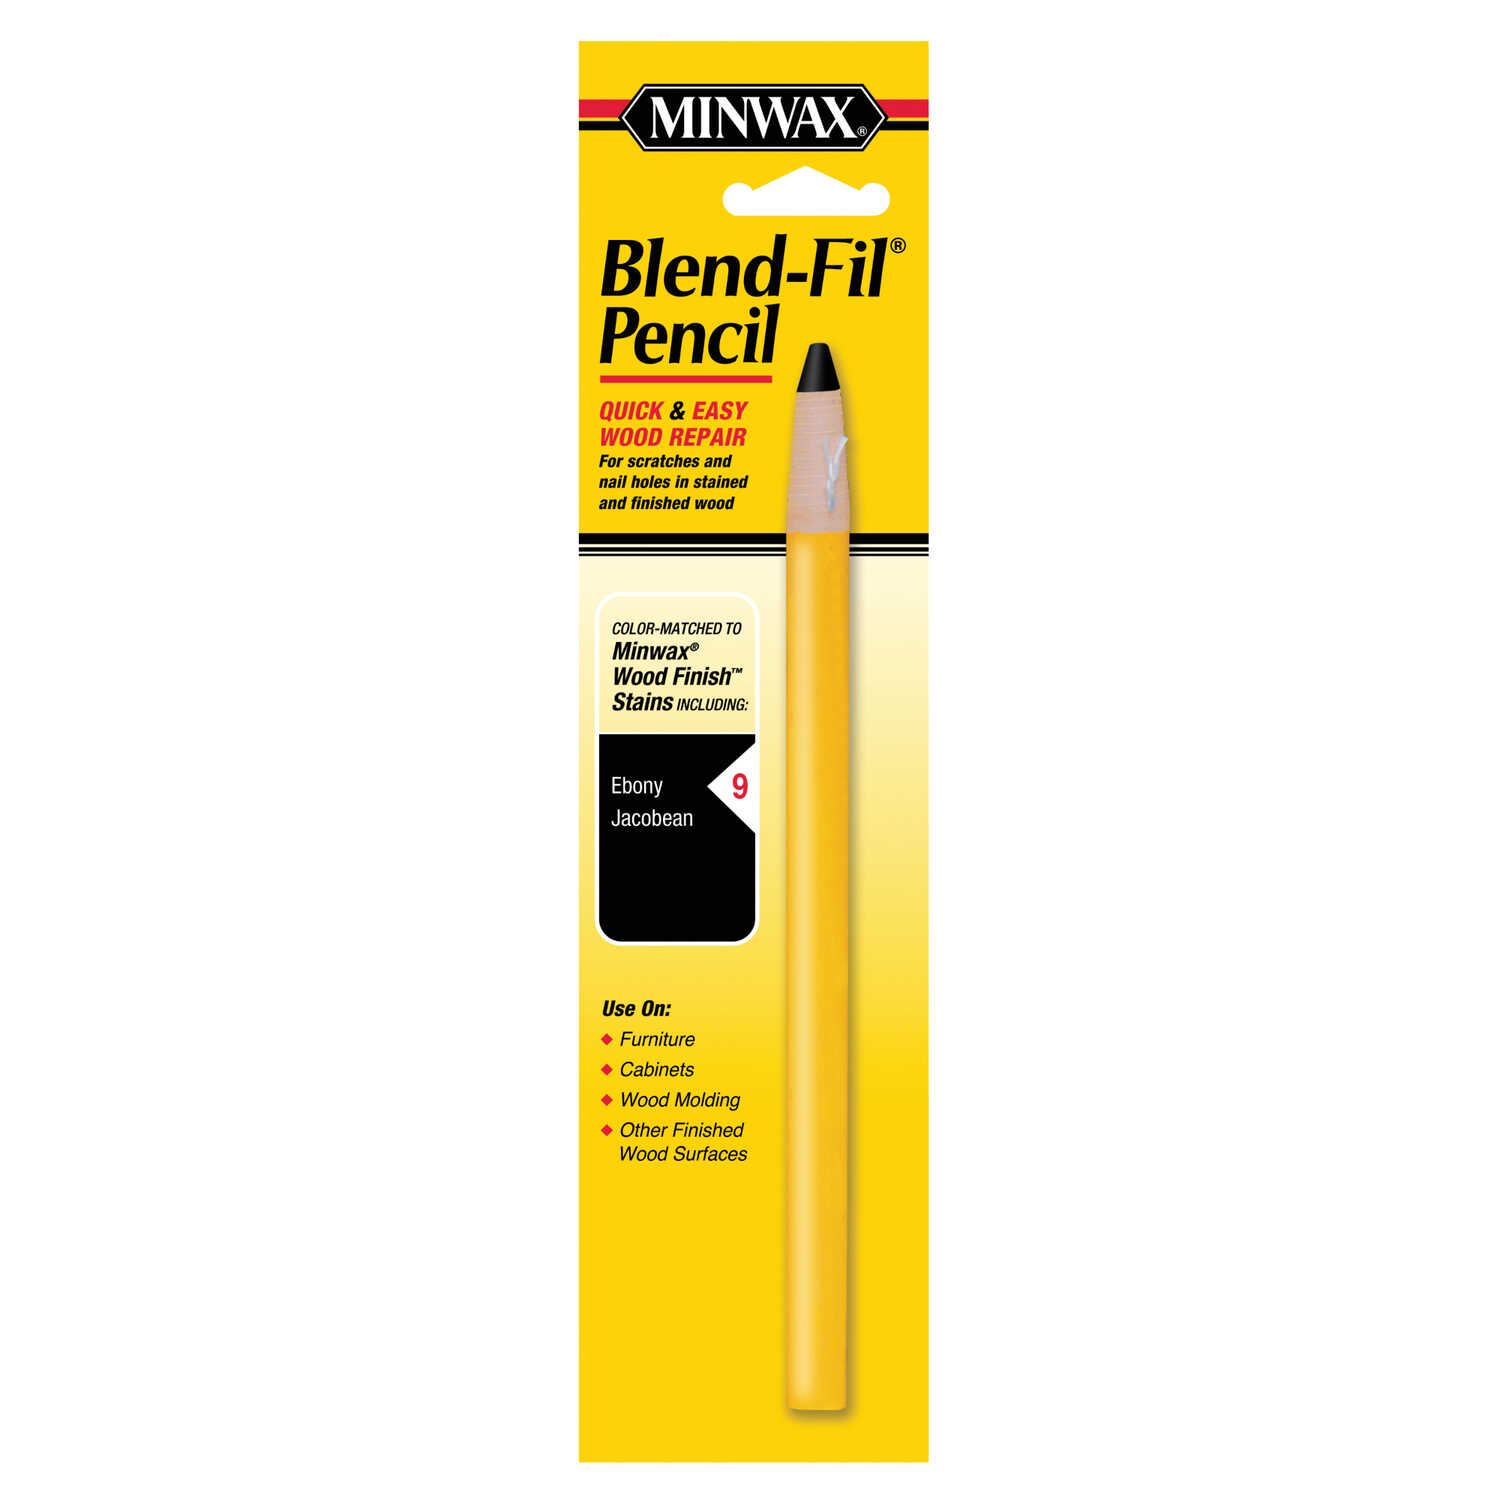 Minwax  Blend-Fil No. 9  Ebony and Jacobean  Wood Pencil  1 oz.